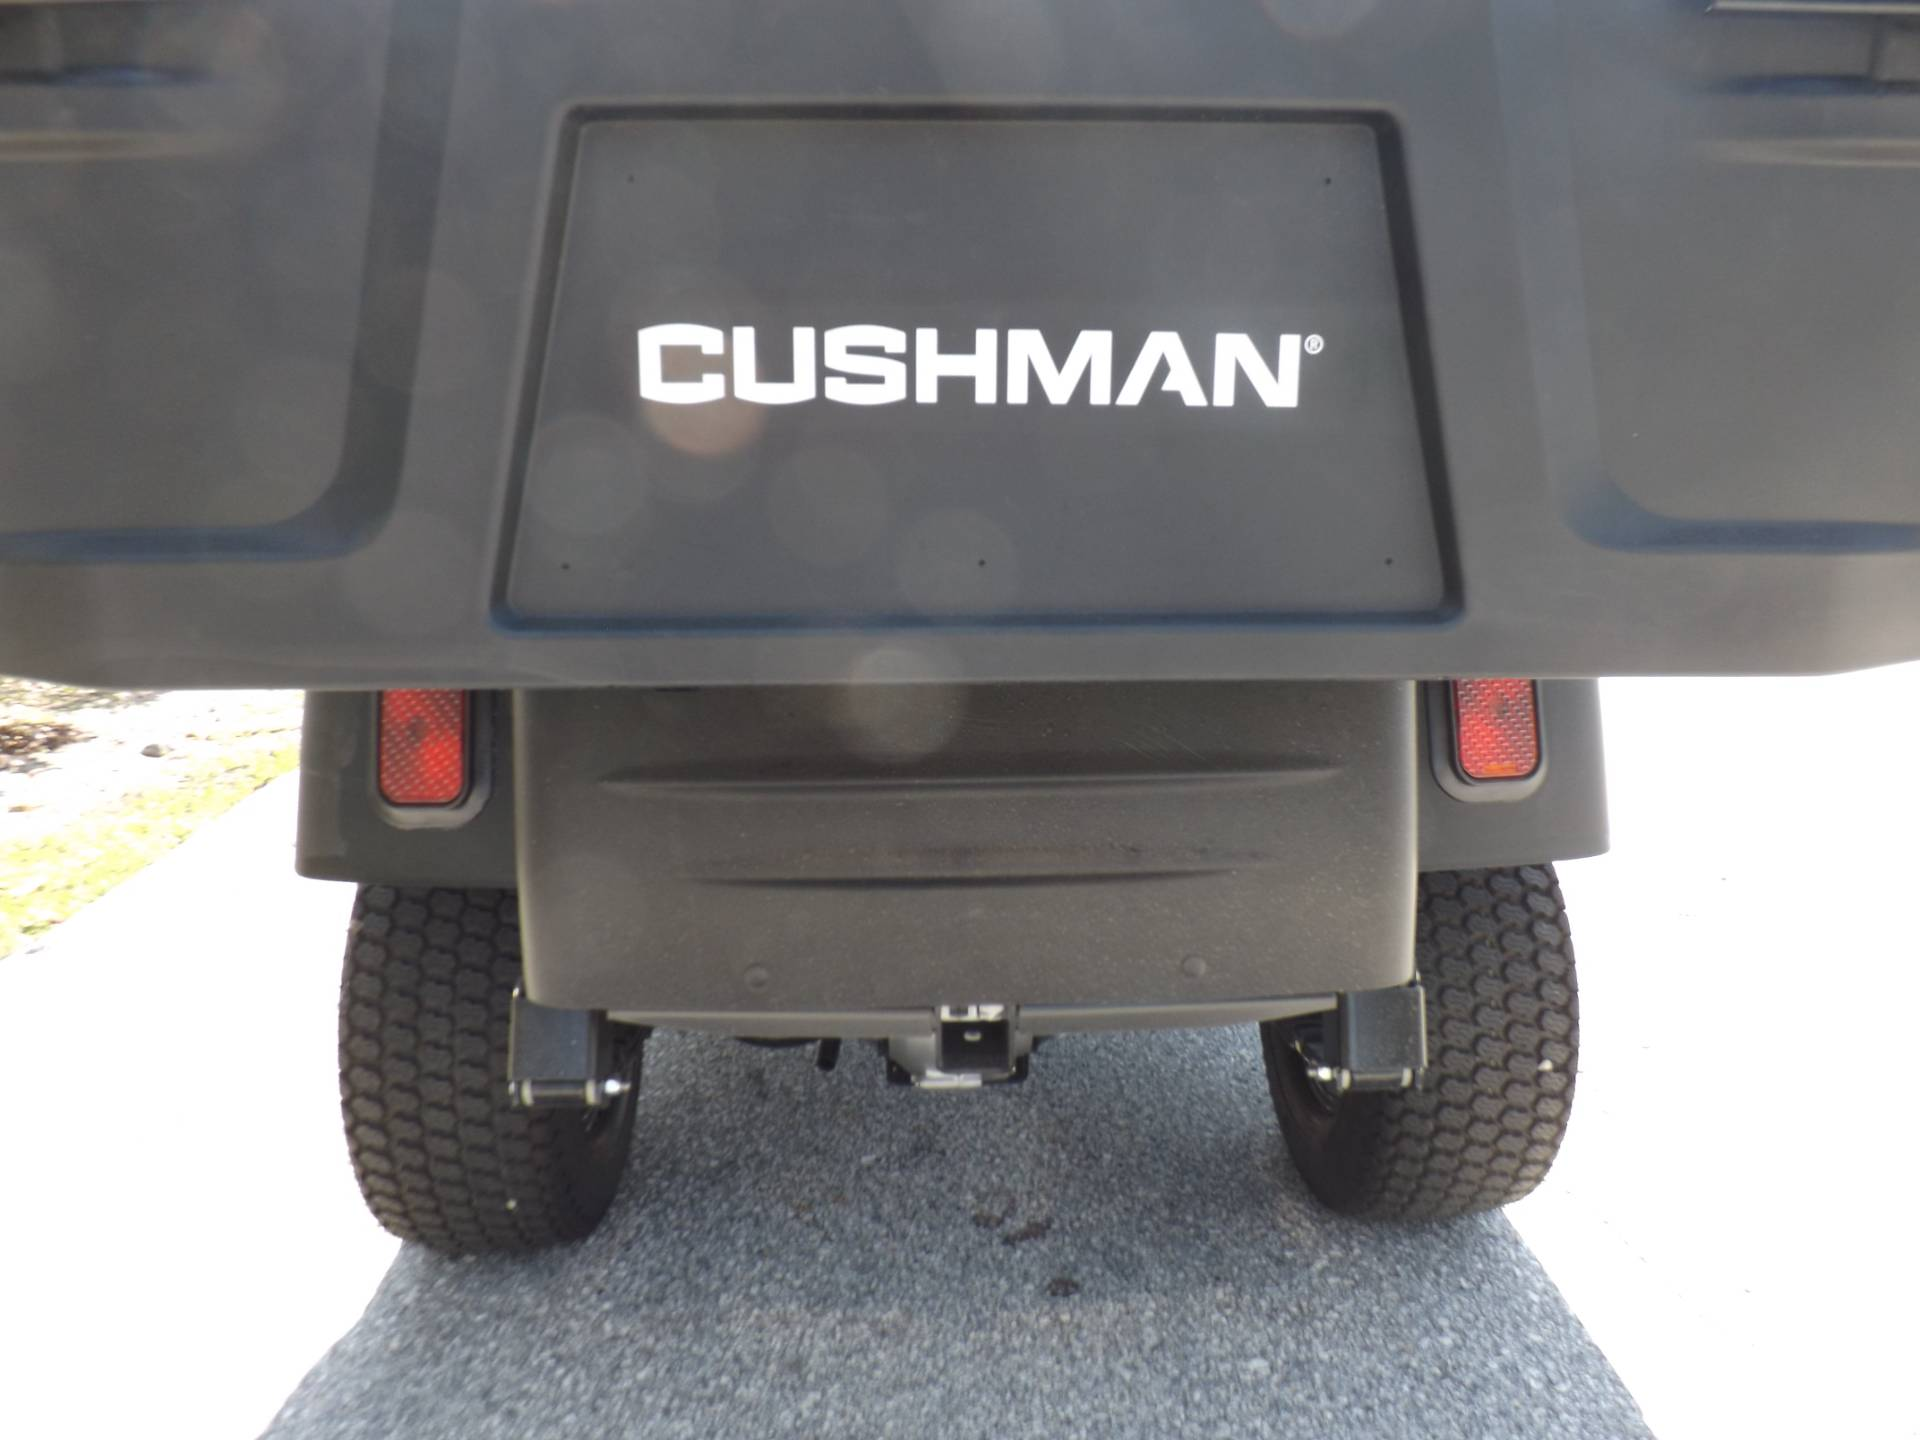 2020 Cushman Hauler 1200X Gas in Lakeland, Florida - Photo 15